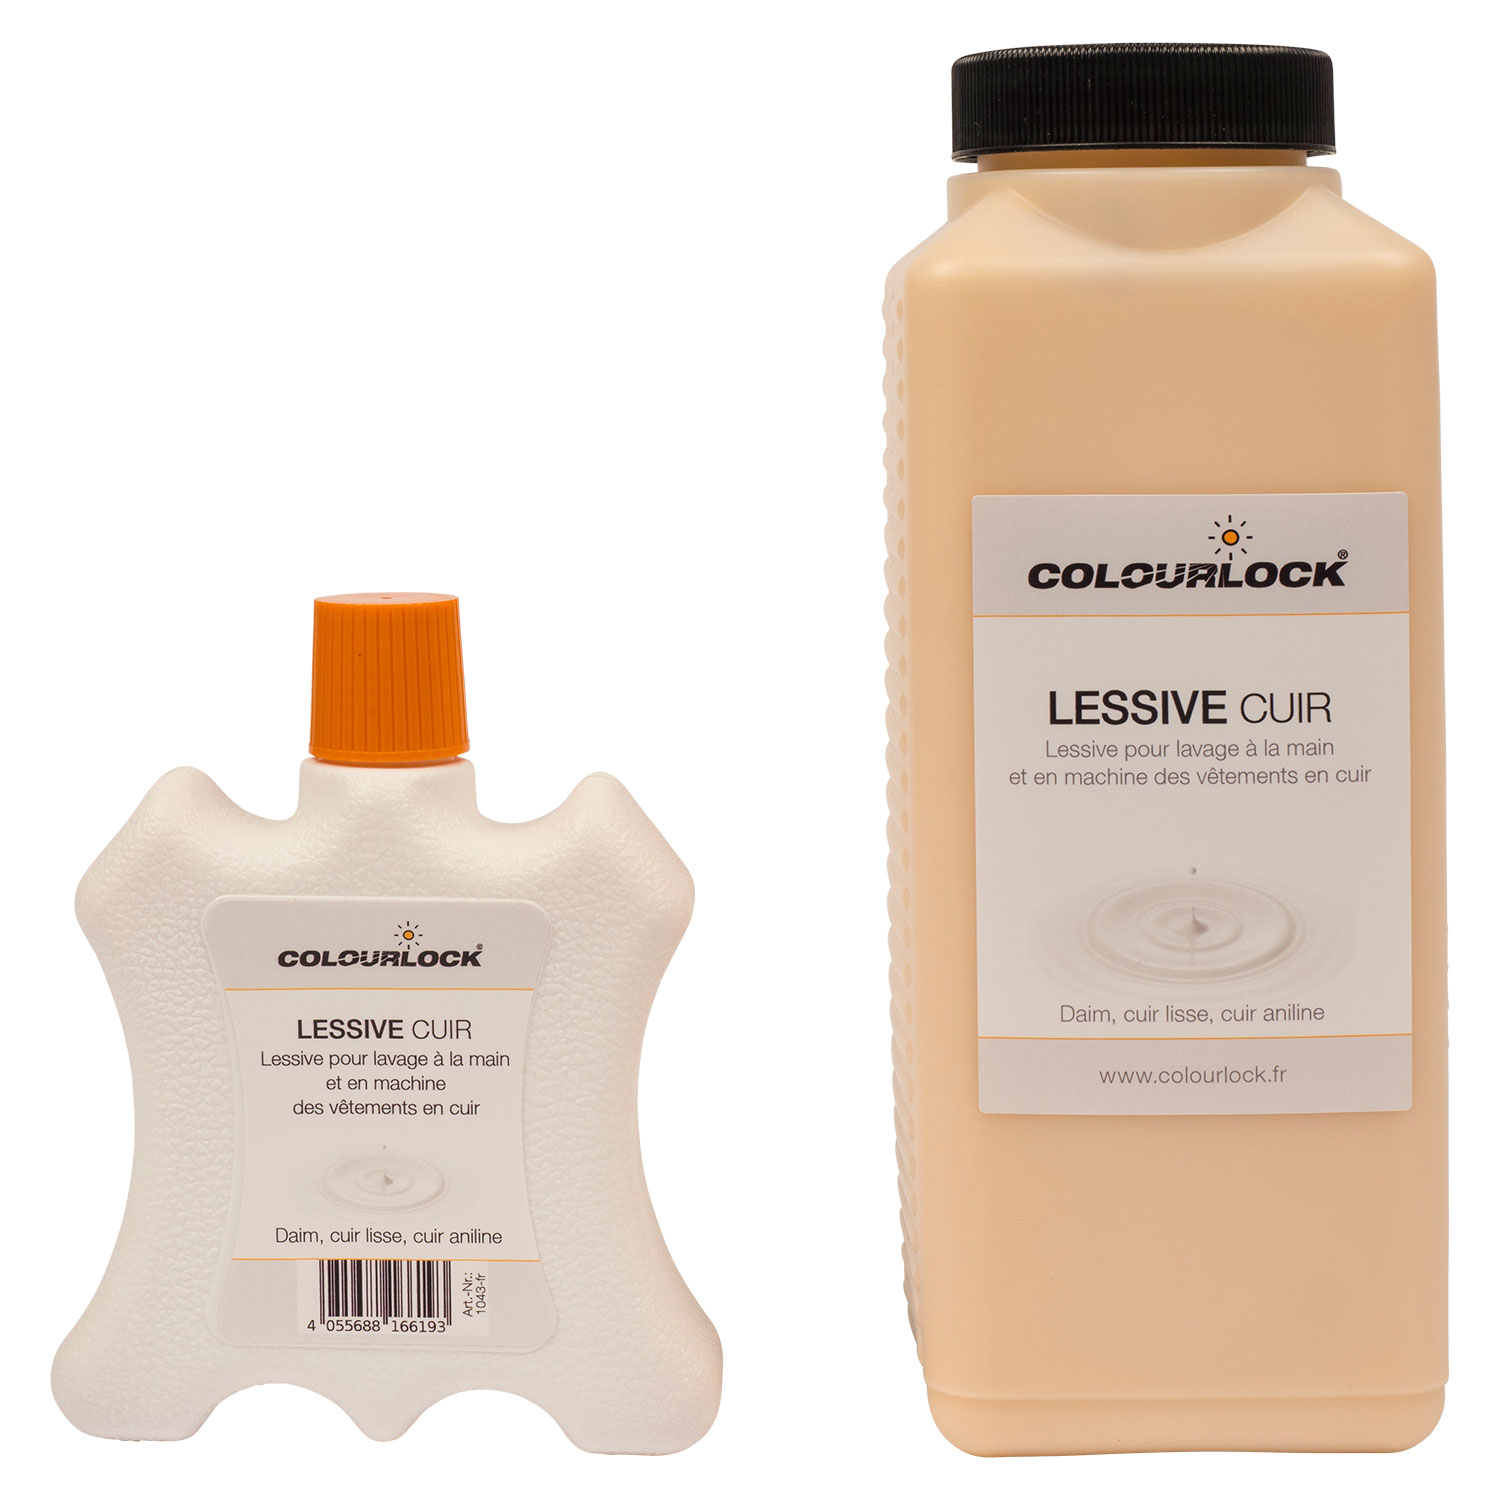 Lessive cuir COLOURLOCK, 250 ml